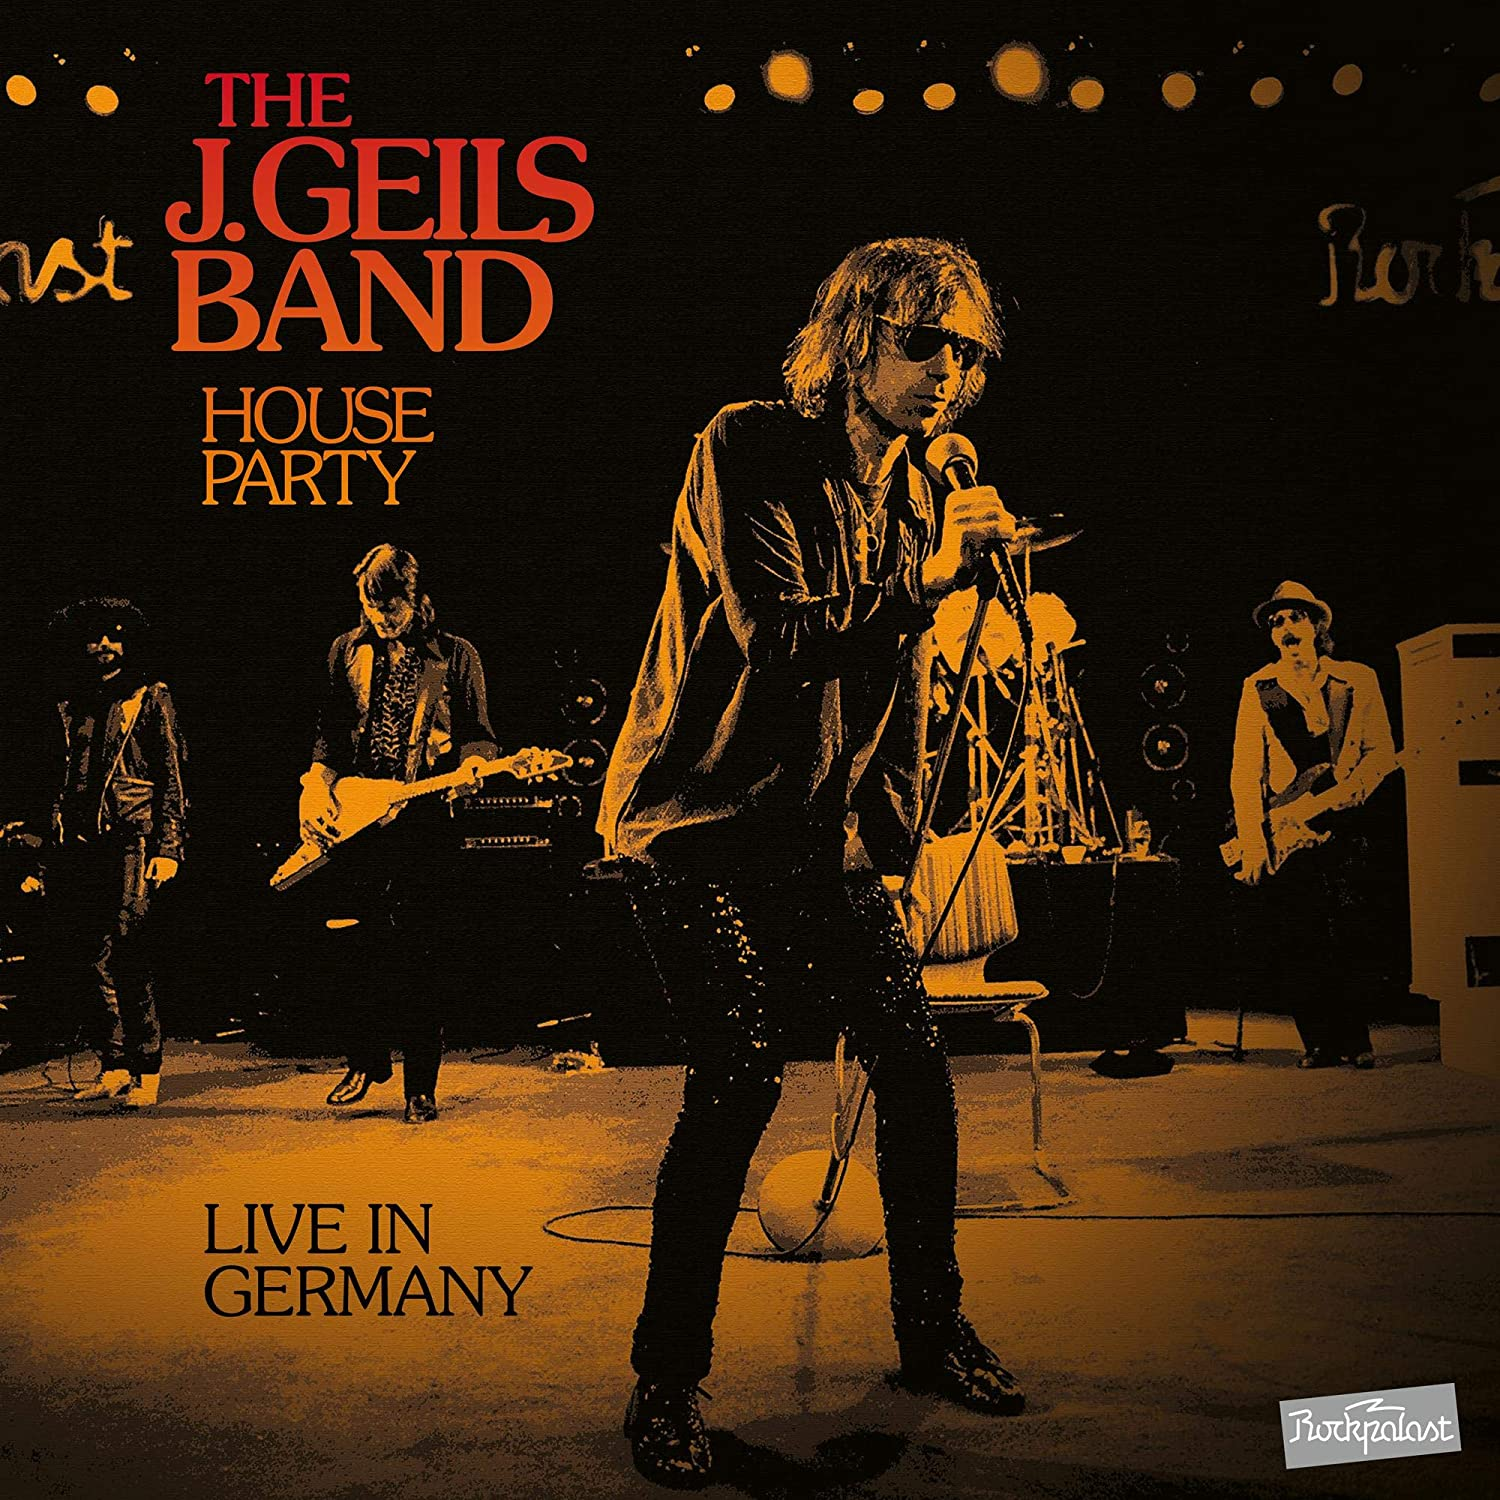 J. Geils Band - House Party Live In Germany [Limited Edition Orange 2LP]